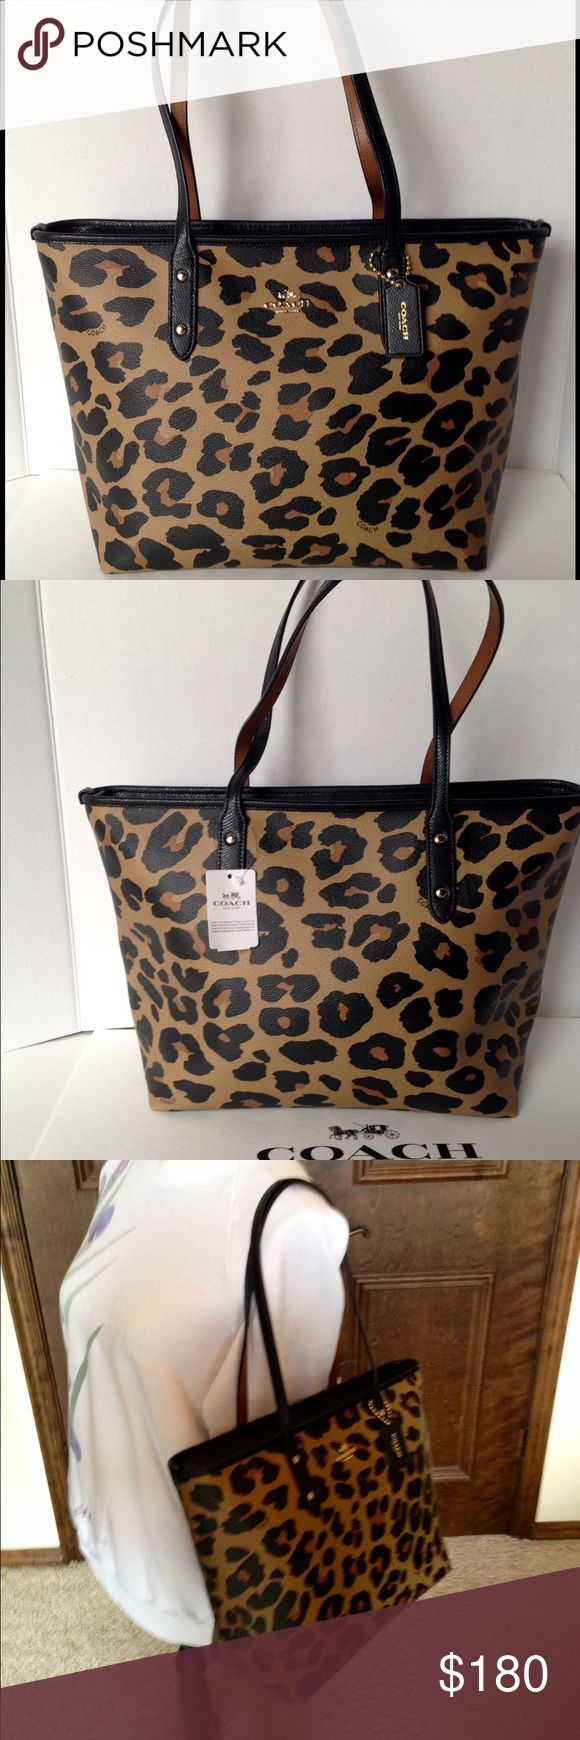 "Coach City Zip Tote Leopard Print Coach city zip top tote in leopard print PVC canvas. Gold hardware and black straps, outlined top and hangtag. Handles with 9"" drop. Inside black twill lining with zippered pocket and two slip pockets. F38392. Stunning handbag!❤️ Coach Bags Totes"